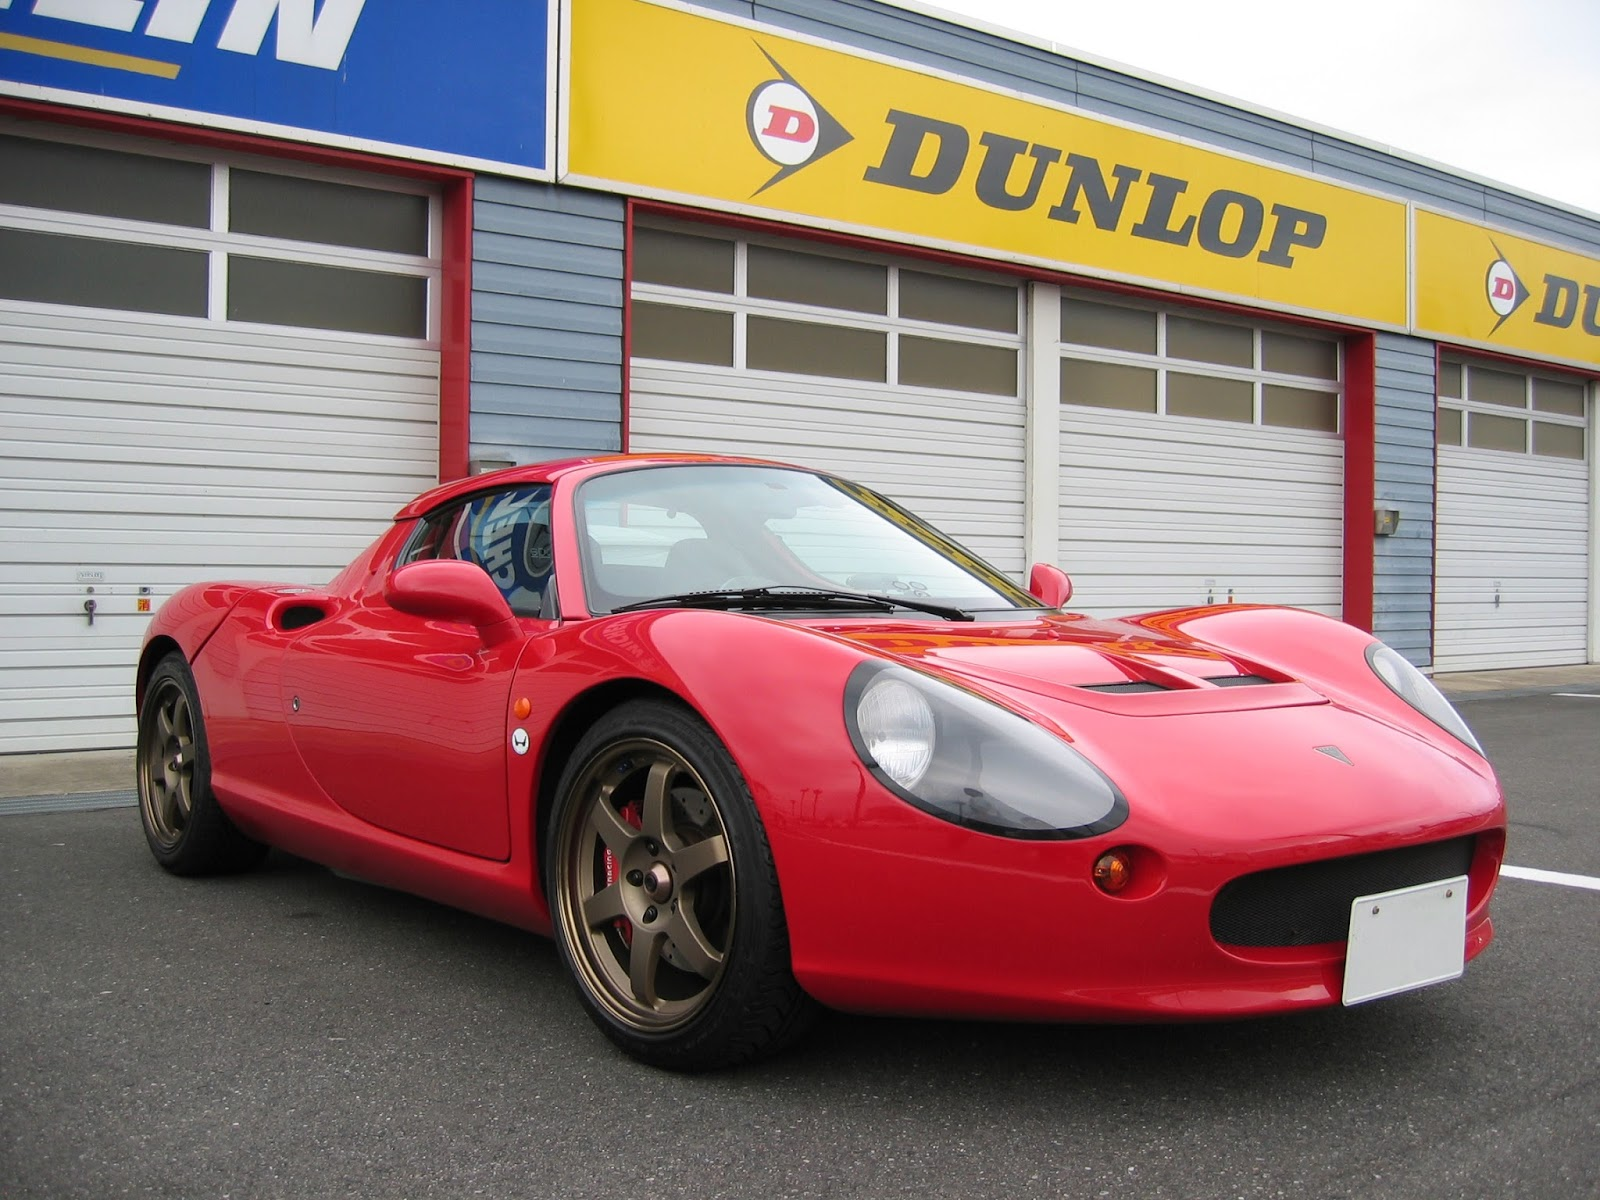 Small Blog V8: Obscure Japanese Sports Car Of The Week